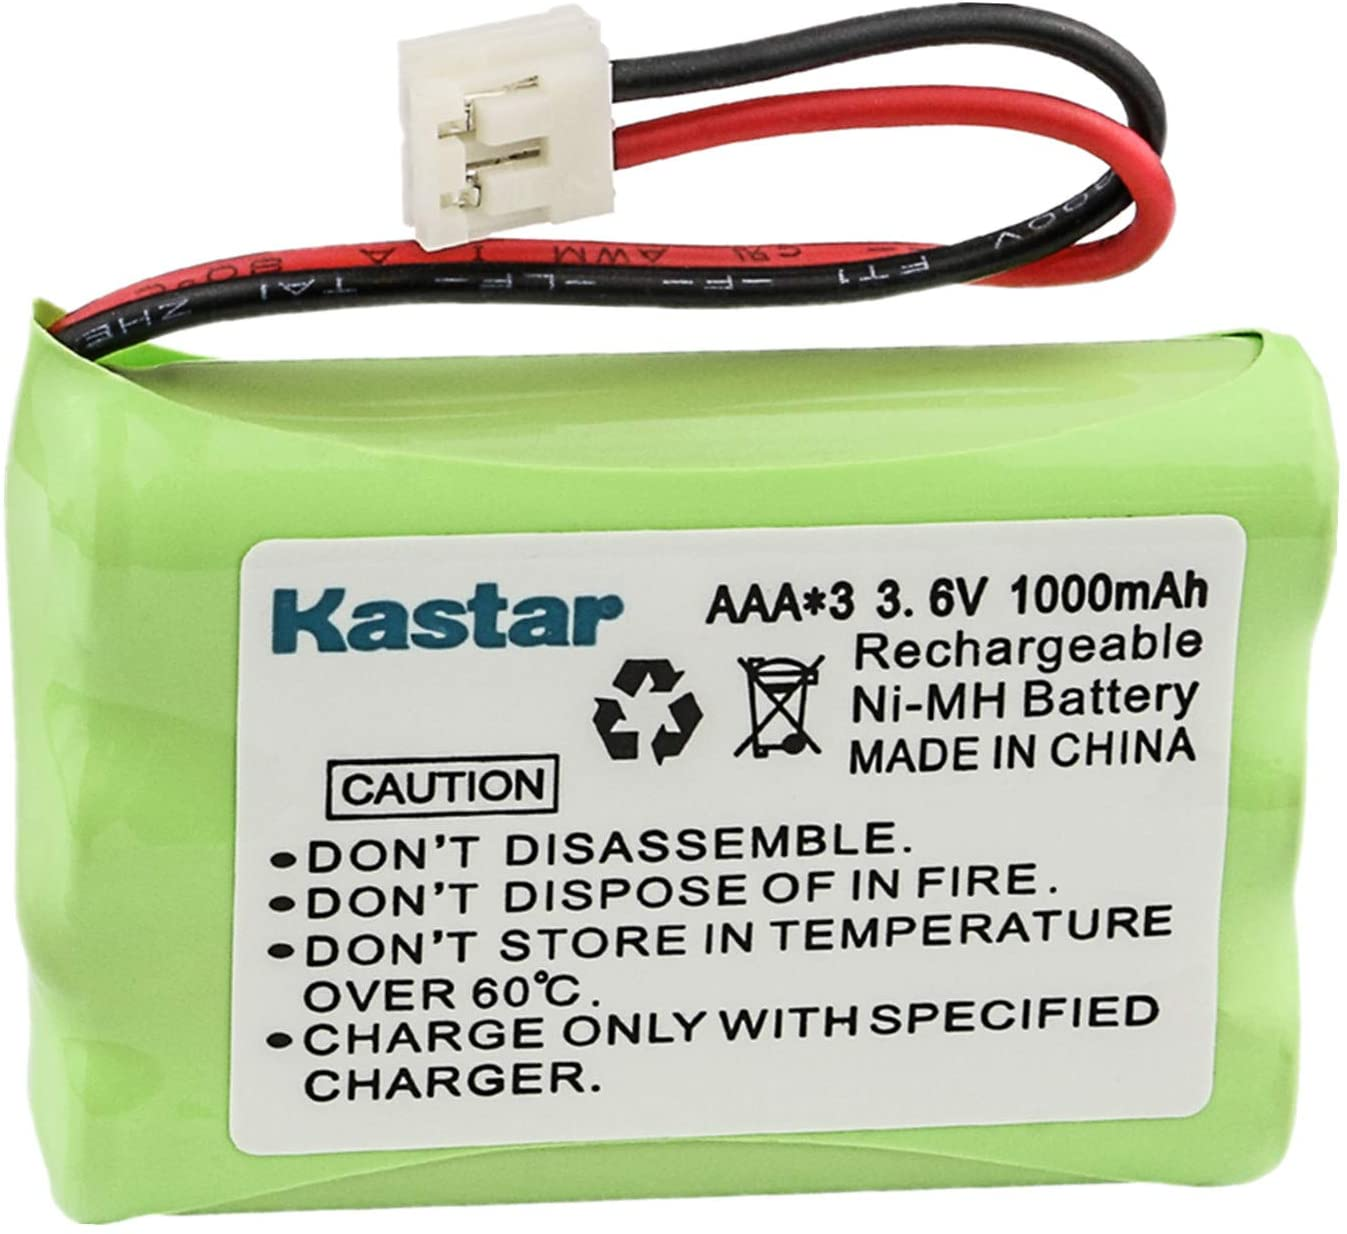 Kastar Cordless Phone Battery for V Tech 89-1323-00-00 80-1323-00-00 80-0099-00-00 8900990000 27910 Vtech ia5829 ia5839 ia5845 ia5849 ia5851 ia5859 ia5875 i6717 i6720 i6725 i6727 i6757 i6735 i6763